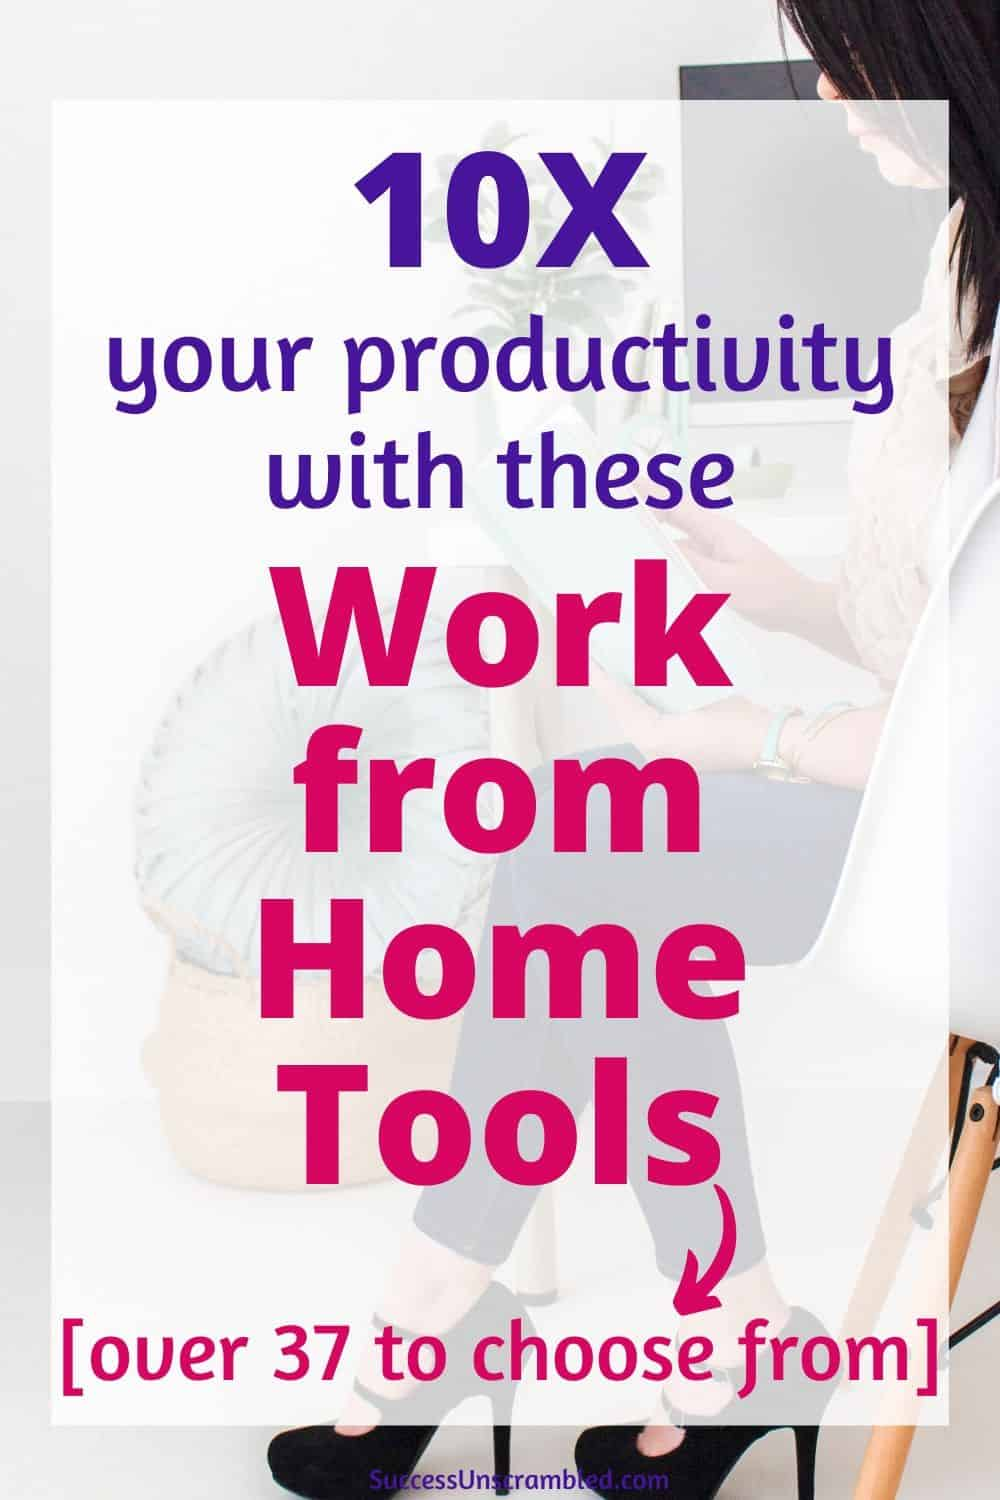 work from home tools, working remotely tools and tips, remote working video collaboration, remote working software - pin 2